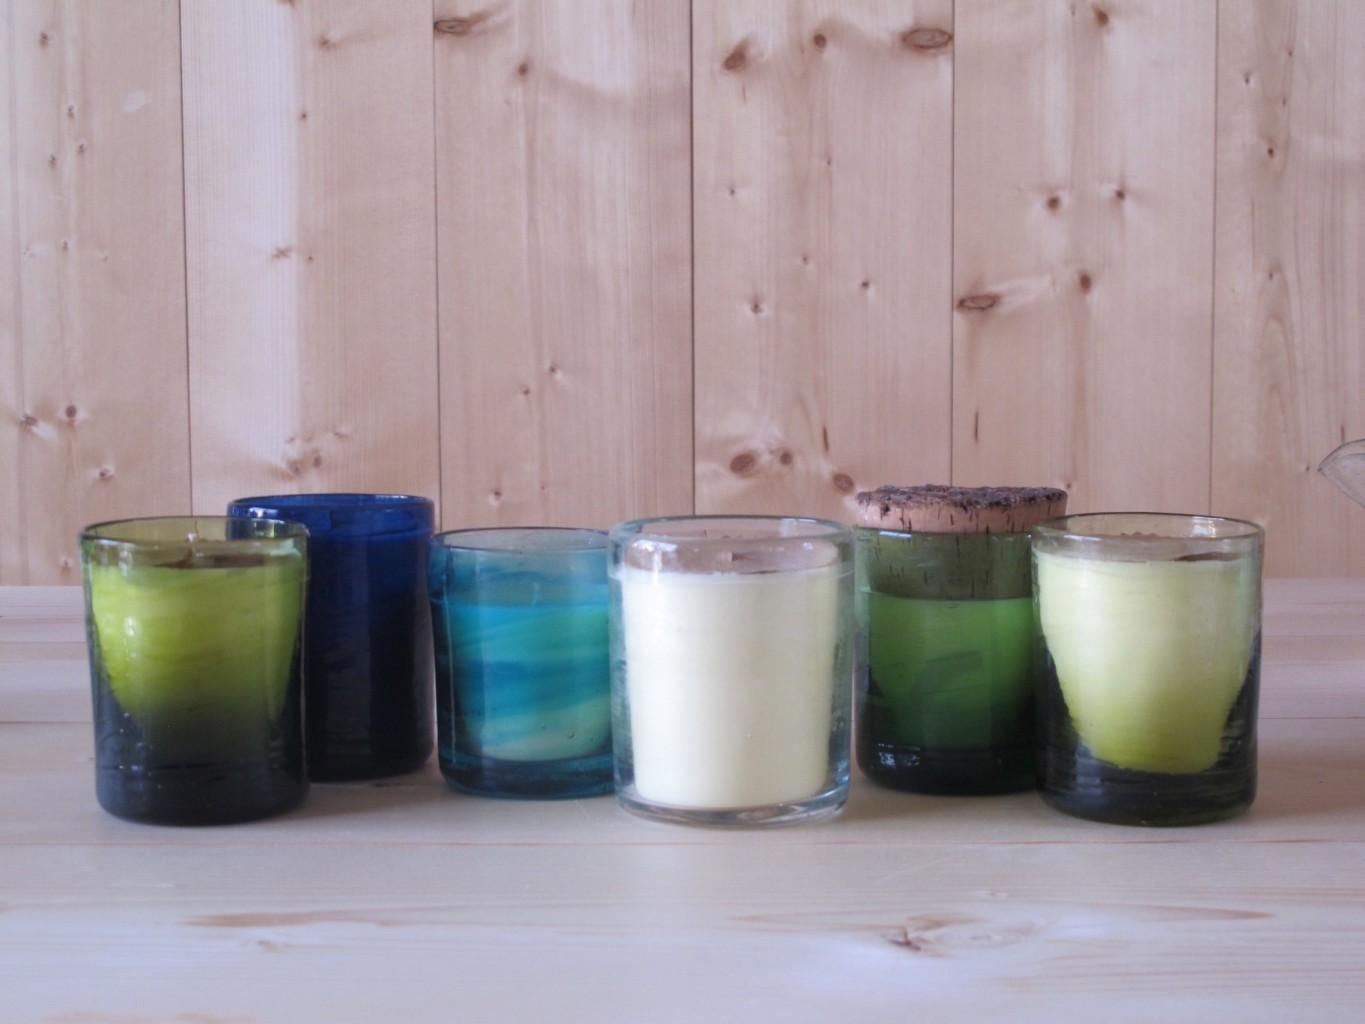 L to R: Murano Moyen Bougie Olive, Blue, Turquoise, Transparent, Green with cork lid, Honey